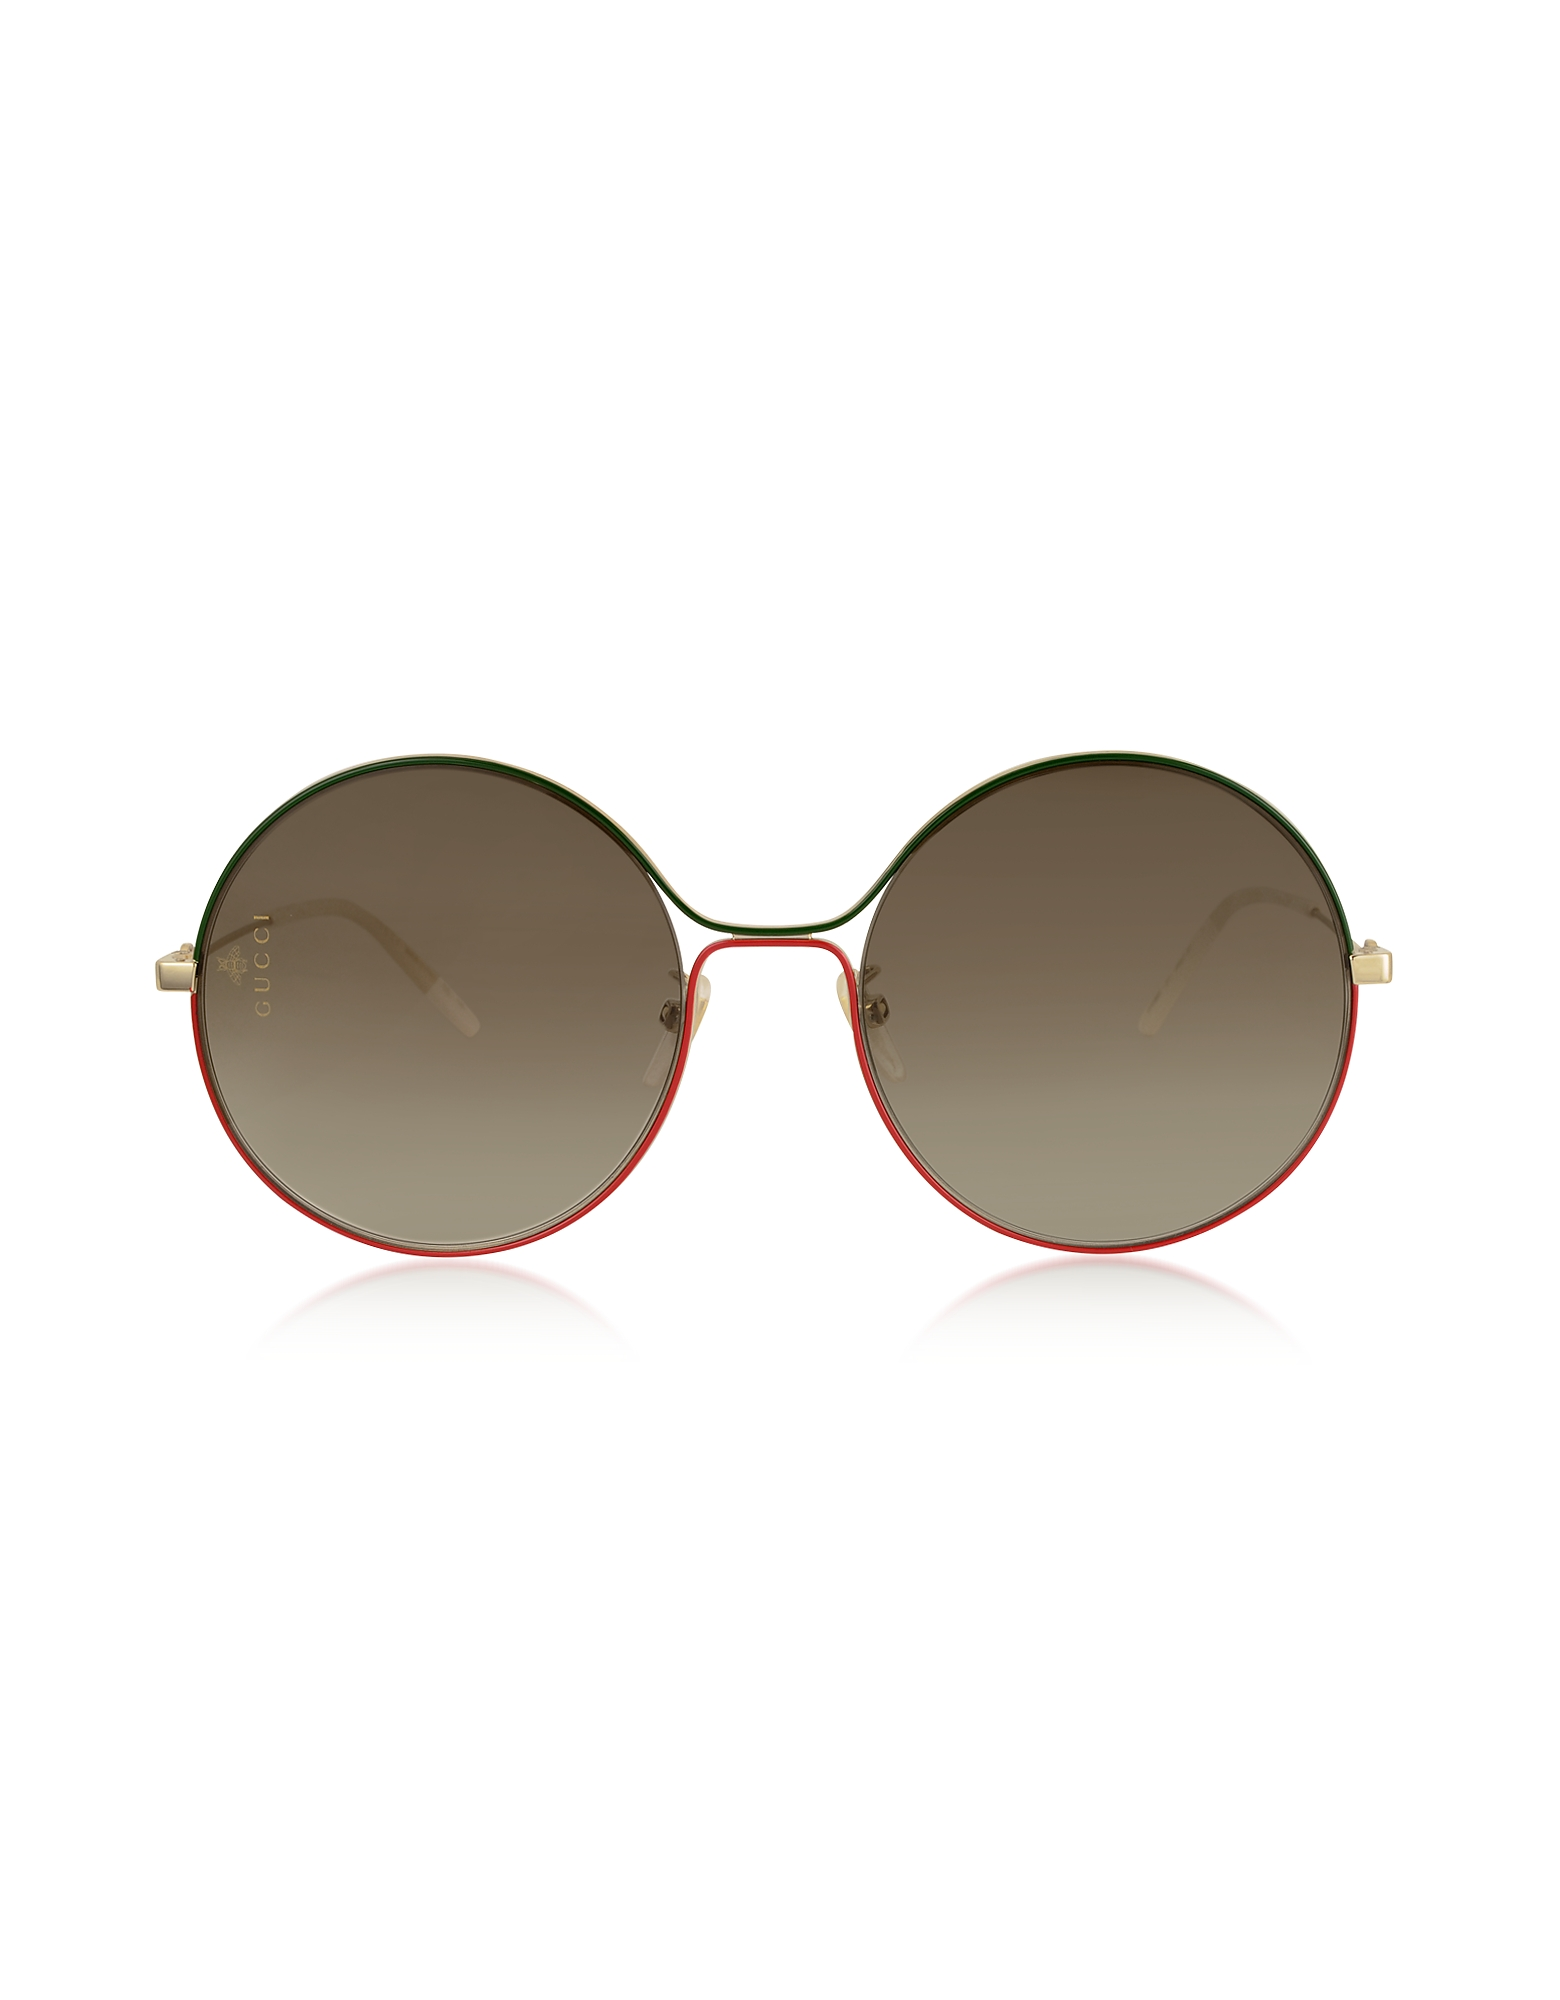 Gucci Designer Sunglasses, Aviator Metal Sunglasses